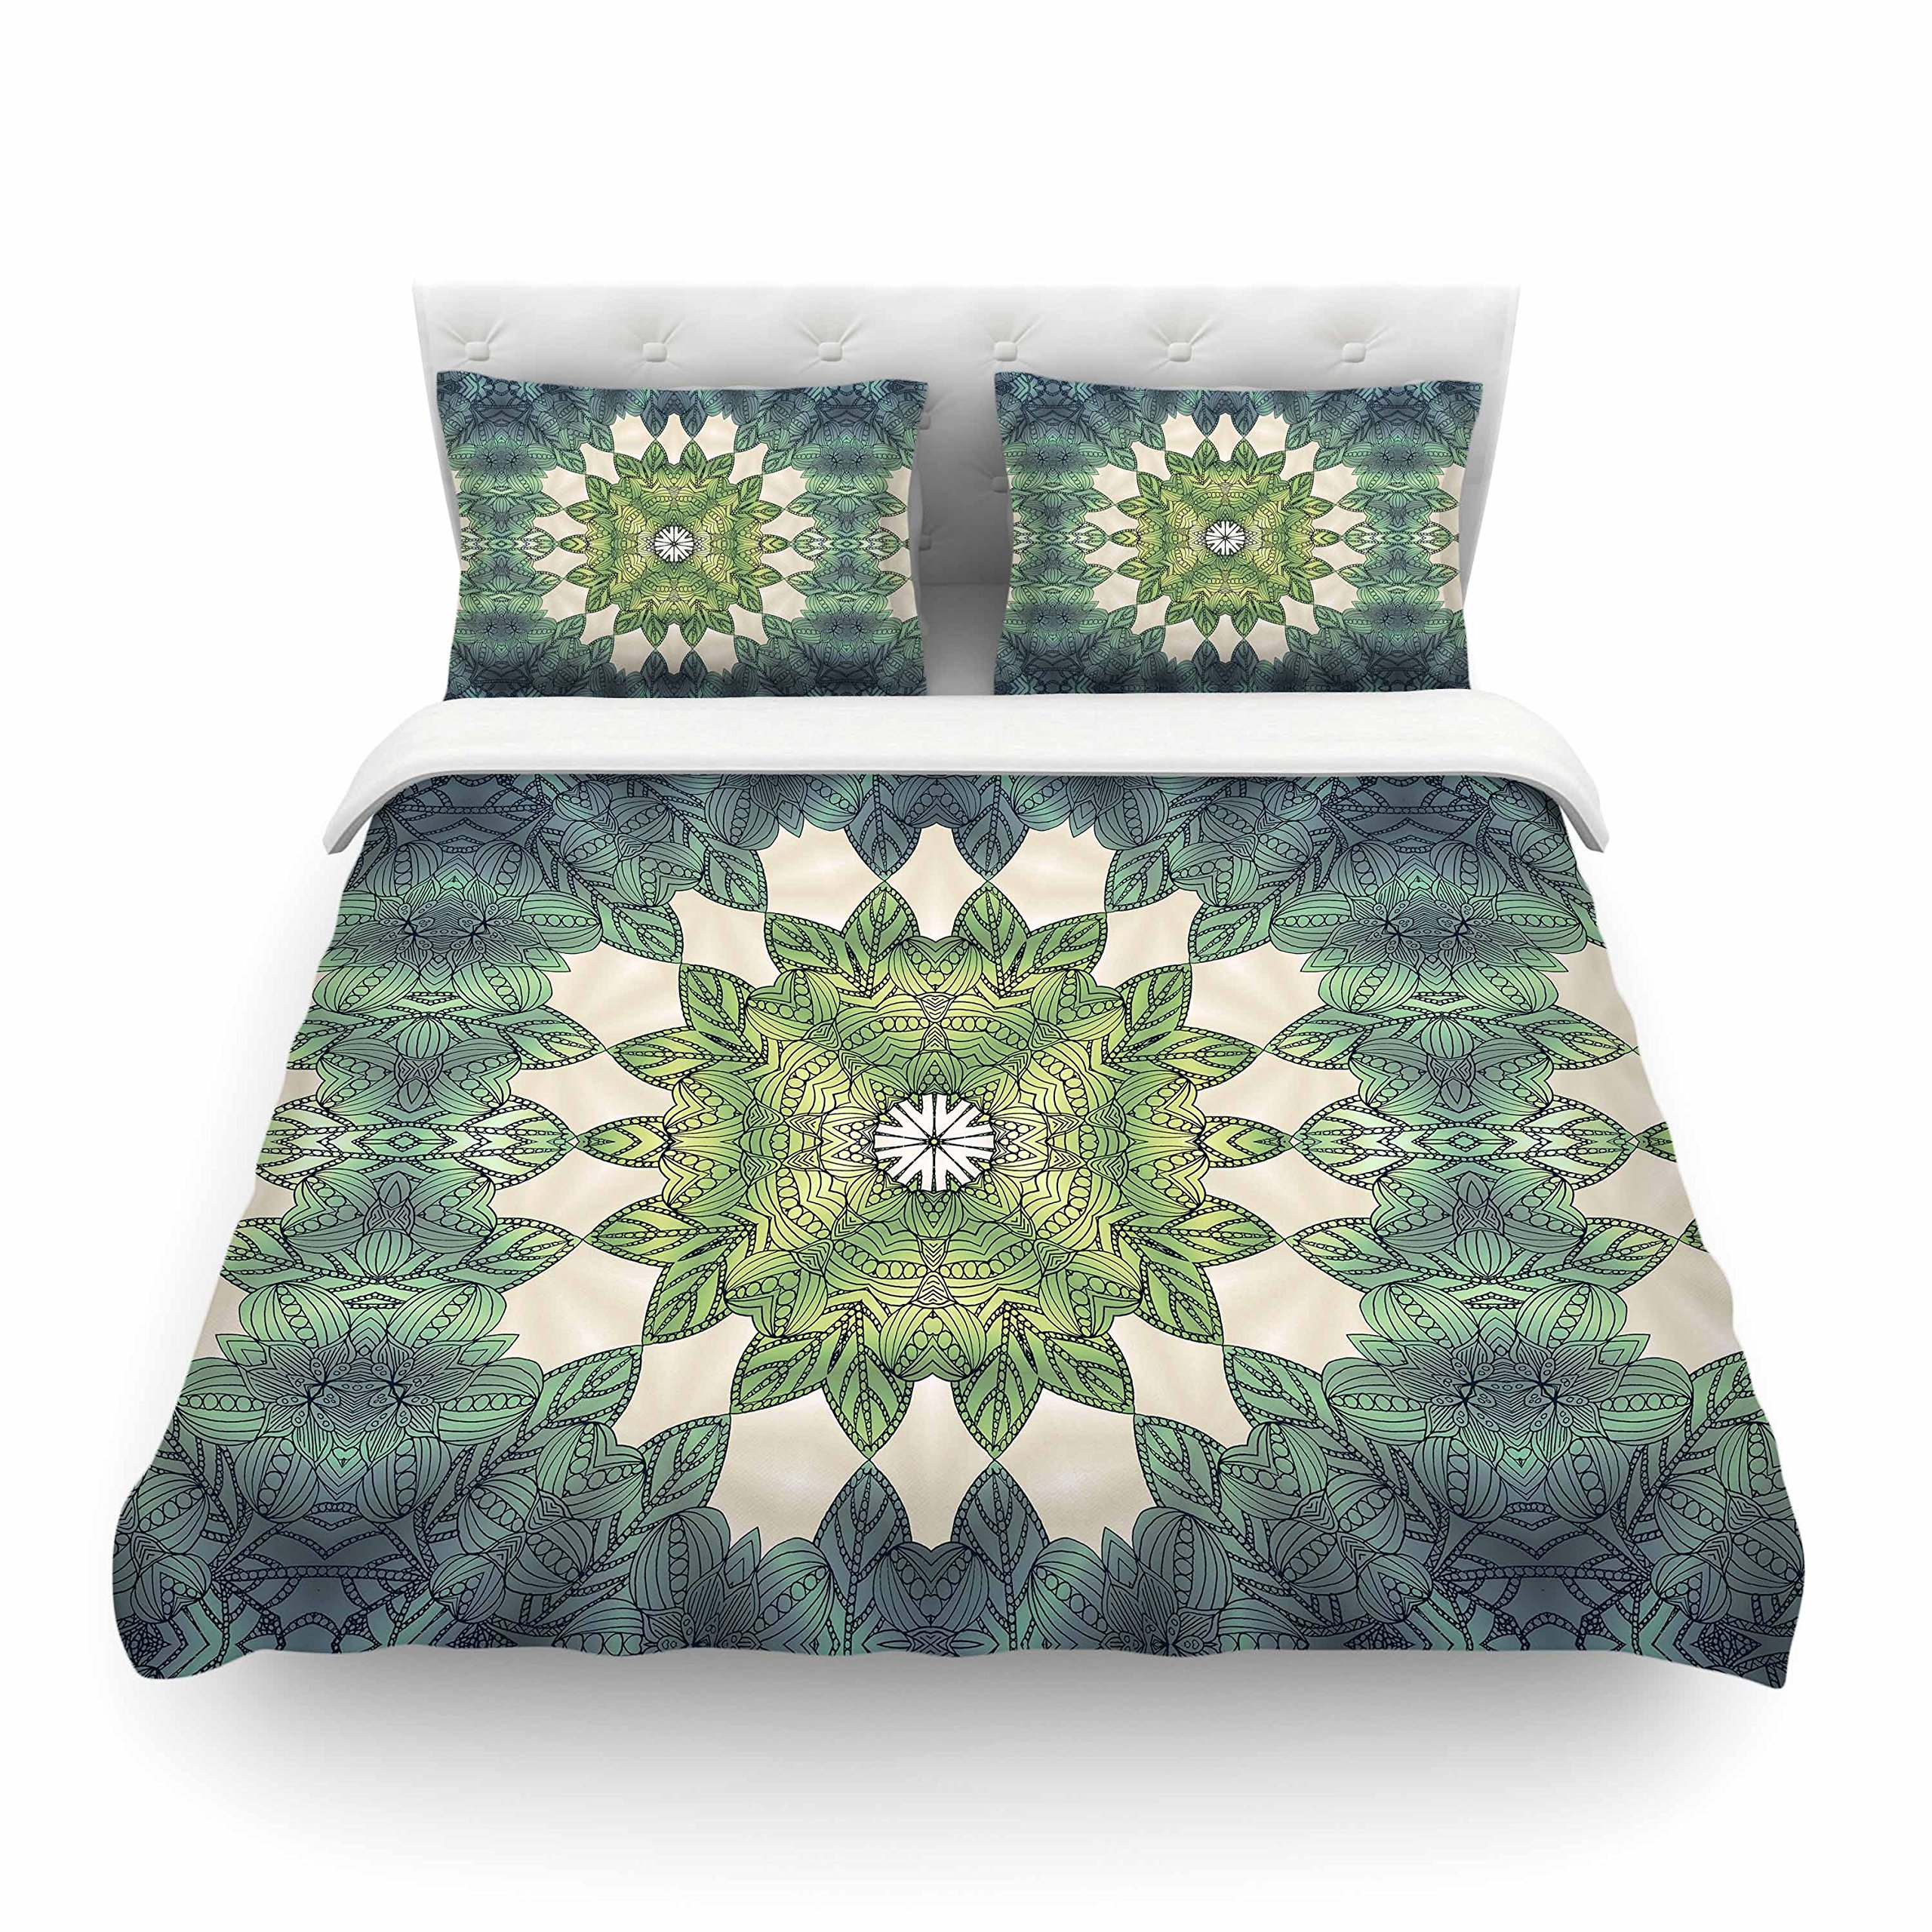 KESS InHouse Art Love Passion ''Forest Leaves Repeat'' Green Teal Geometric King Cotton Duvet Cover, 104 x 88''